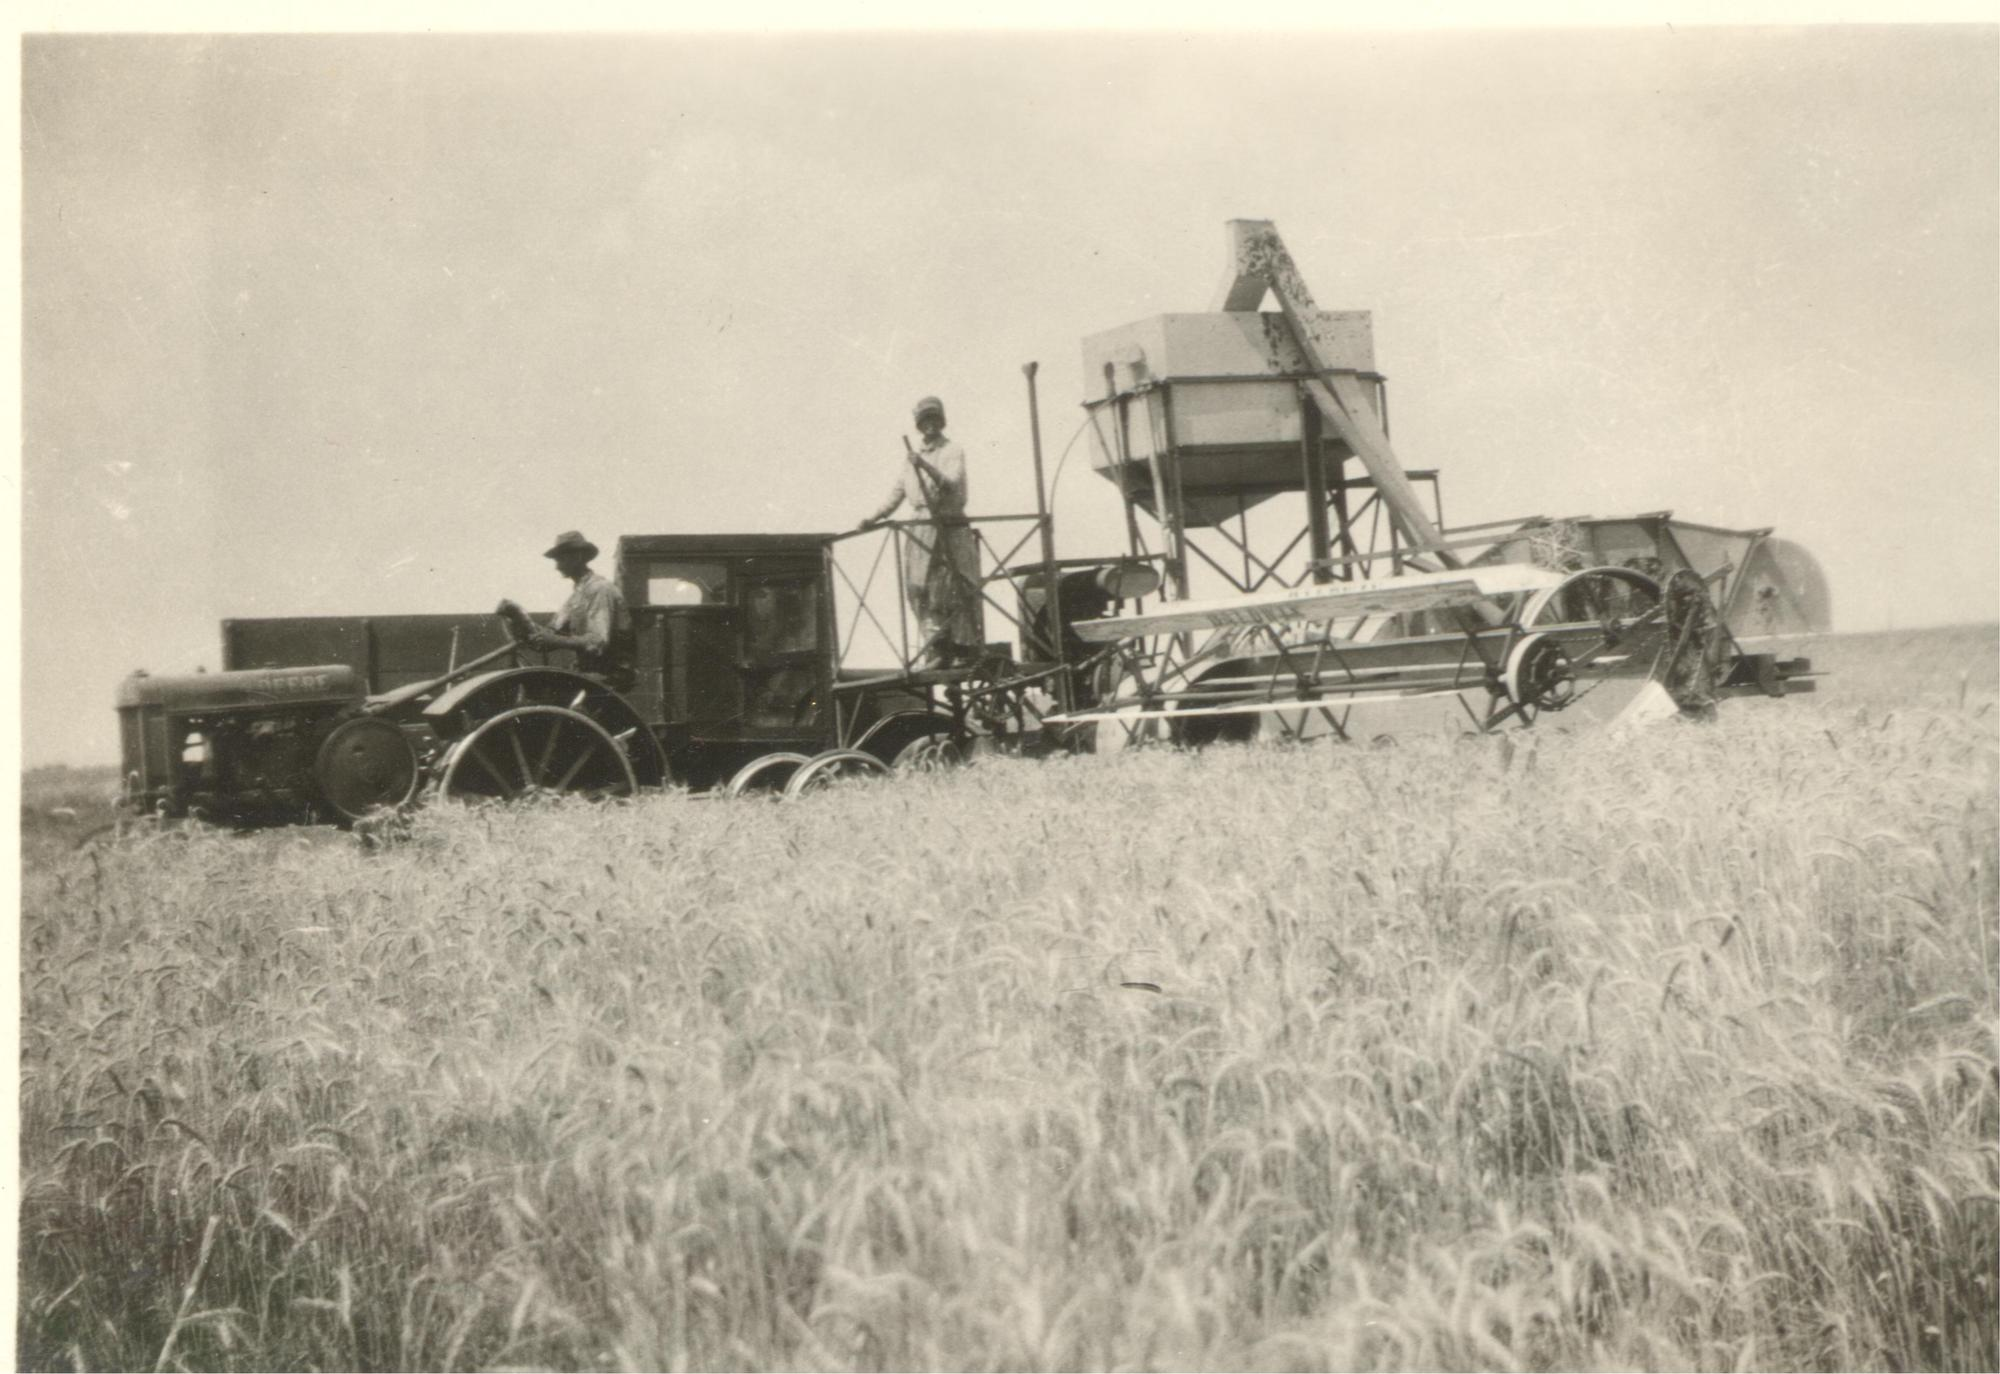 Caroline and Will Henderson harvesting together, 1930